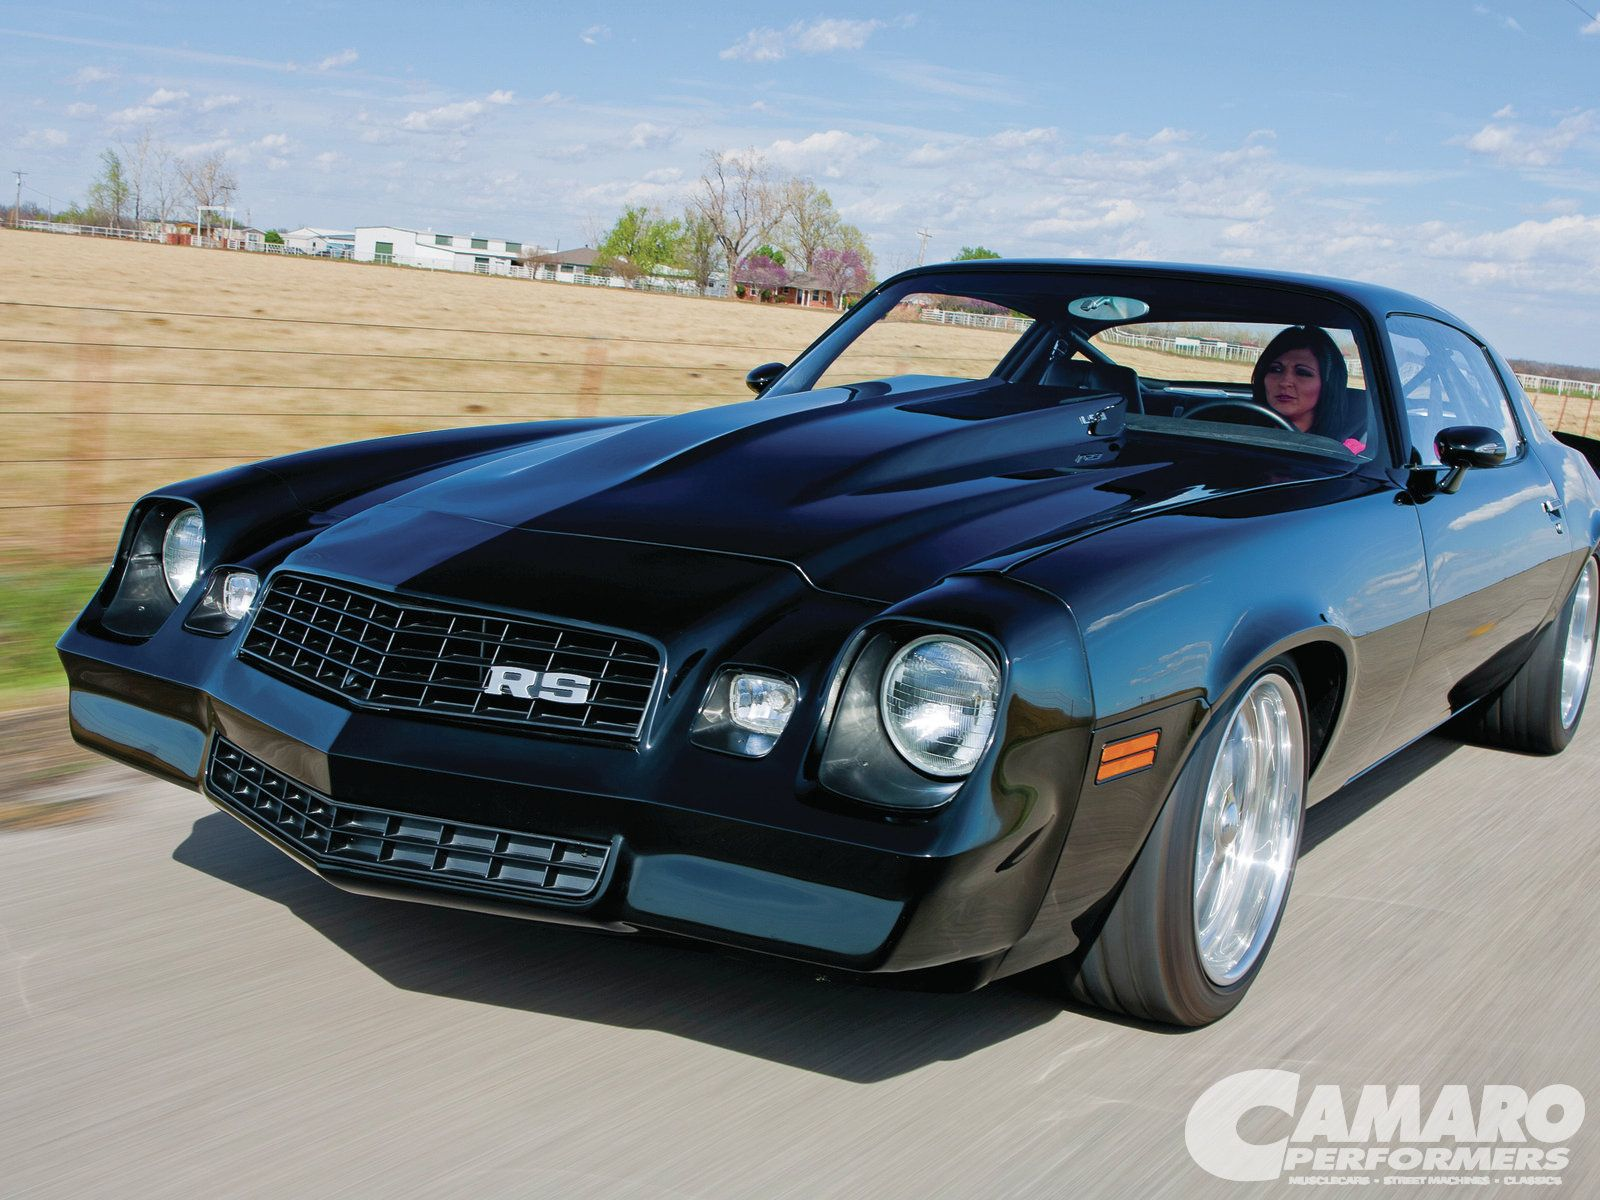 1978 Camaro | 1978 Chevrolet Camaro RS - Hand-Me-Down Photo Gallery